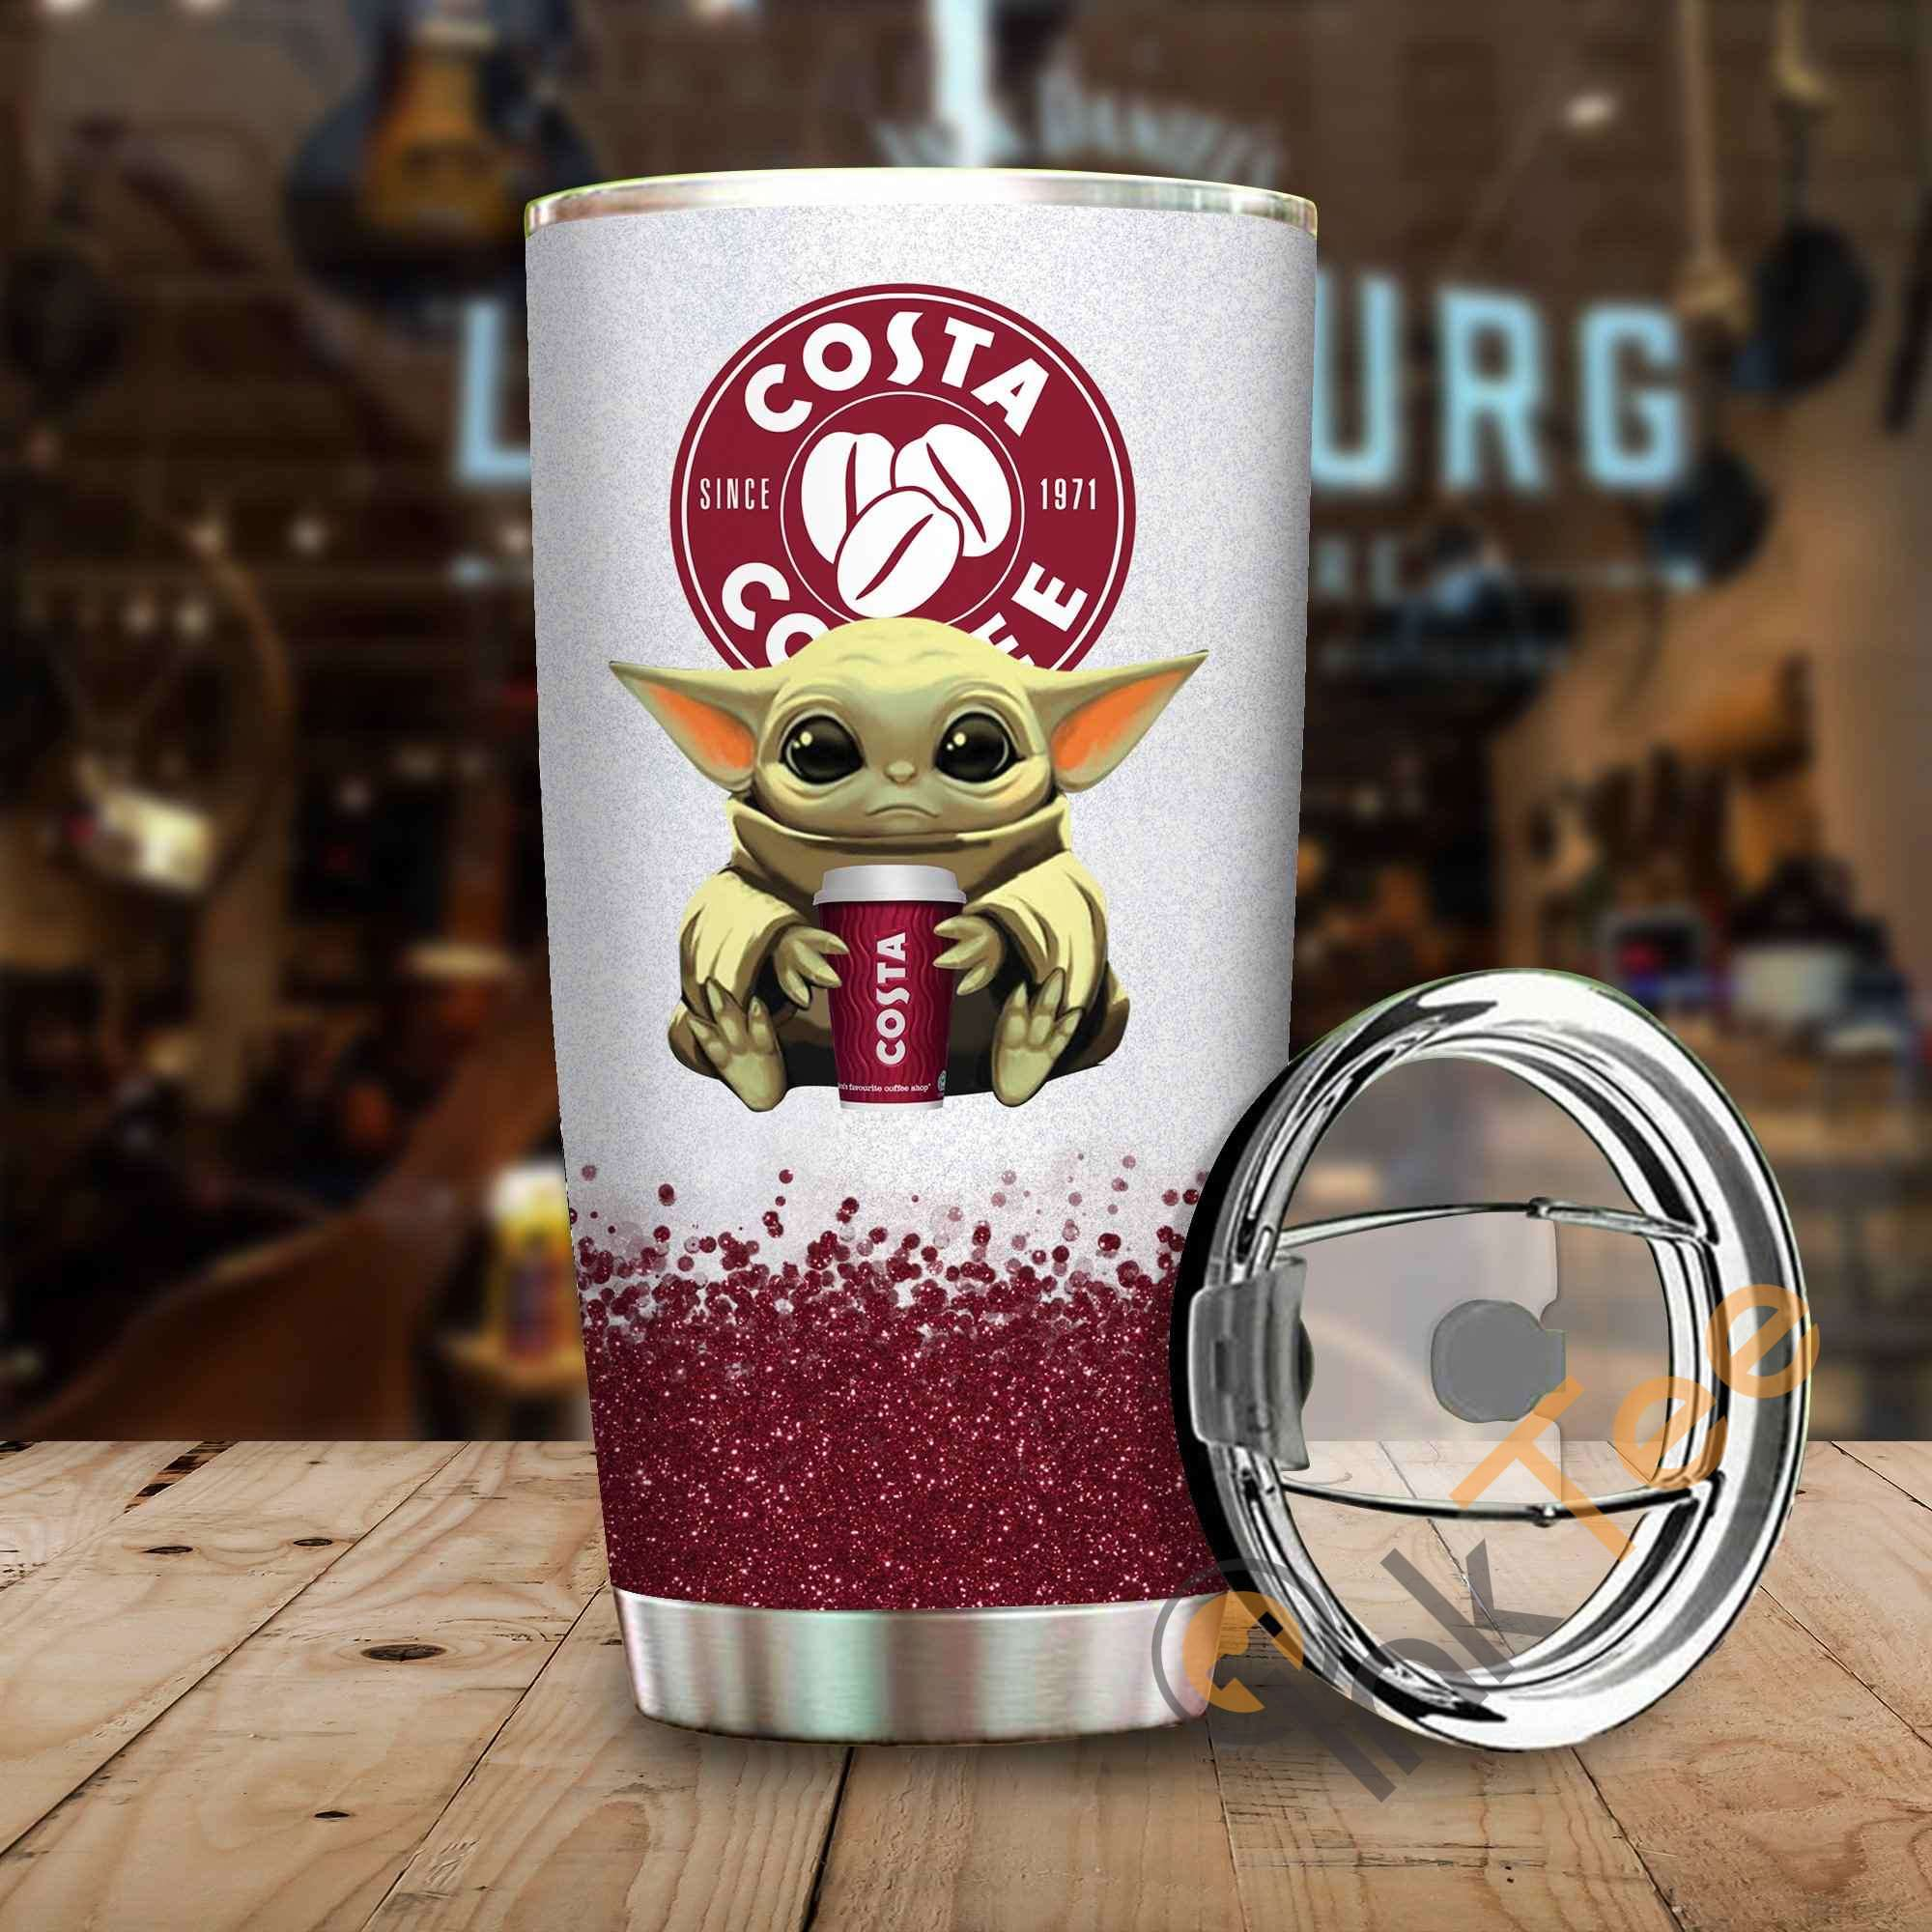 Baby Yoda Hold Costa Coffee Amazon Best Seller Sku 4022 Stainless Steel Tumbler